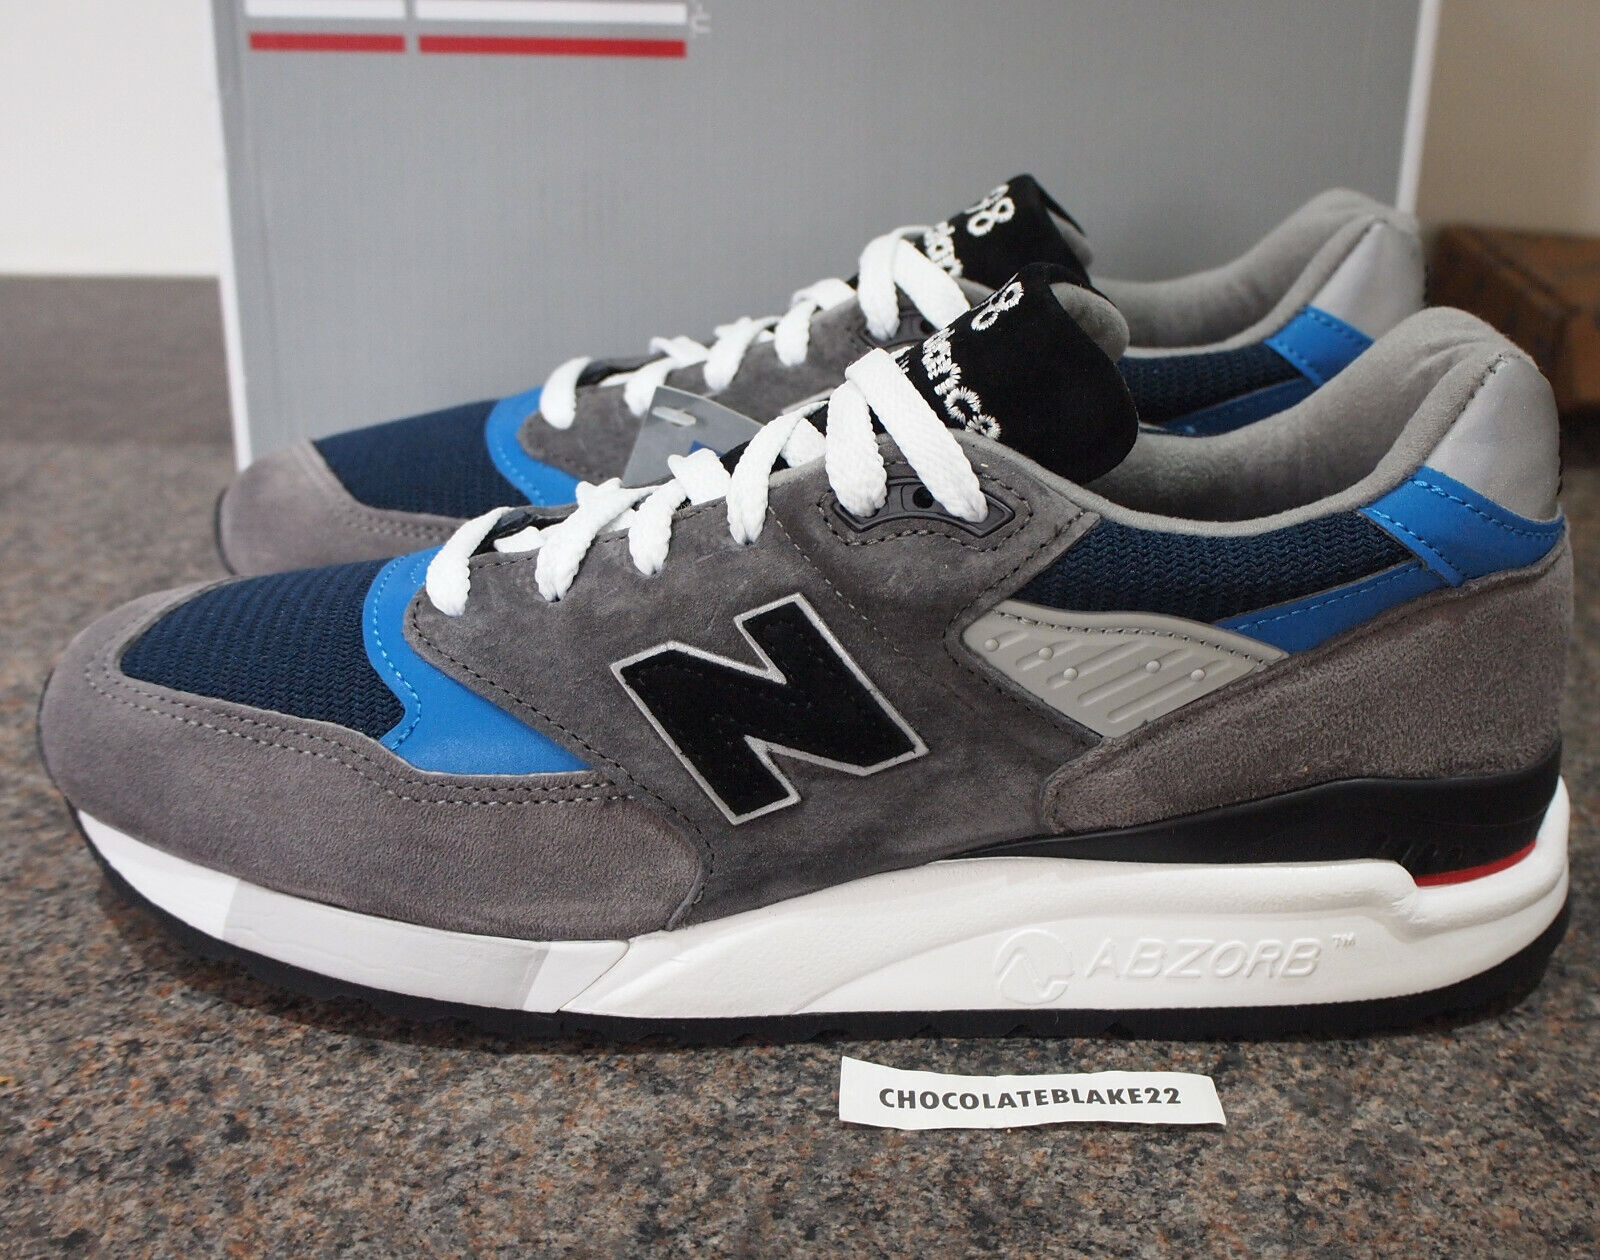 New Balance M998NF UK 9 998 992 990 Made In the USA